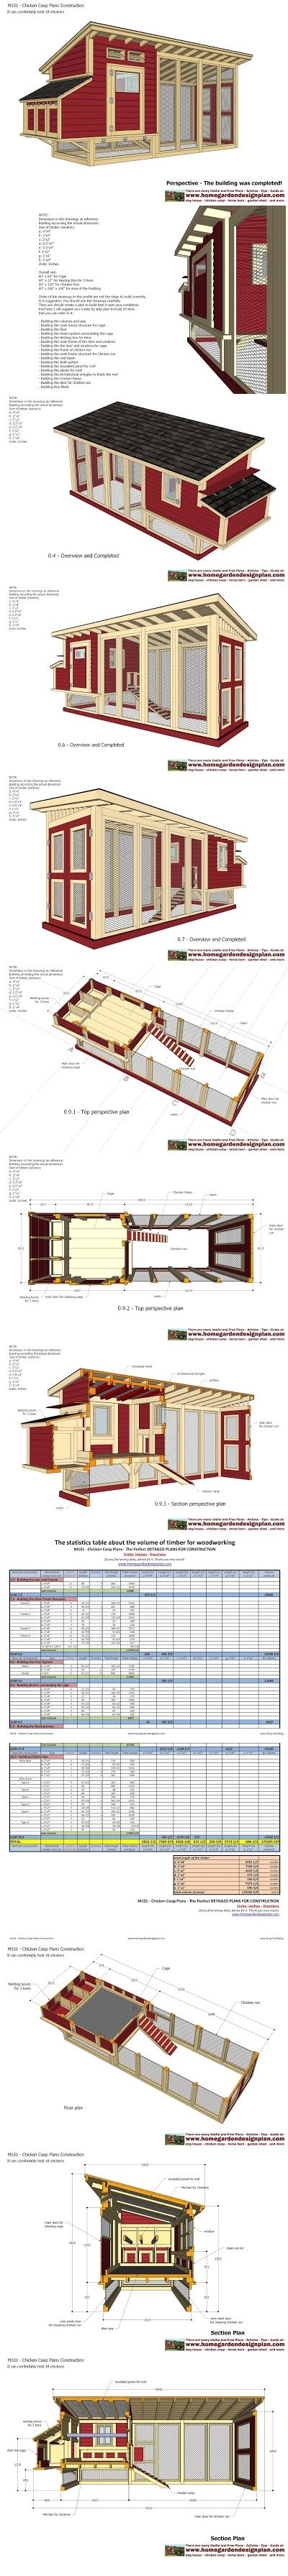 Home Garden Plans: M101   Chicken Coop Plans Construction   Chicken Coop  Design   How